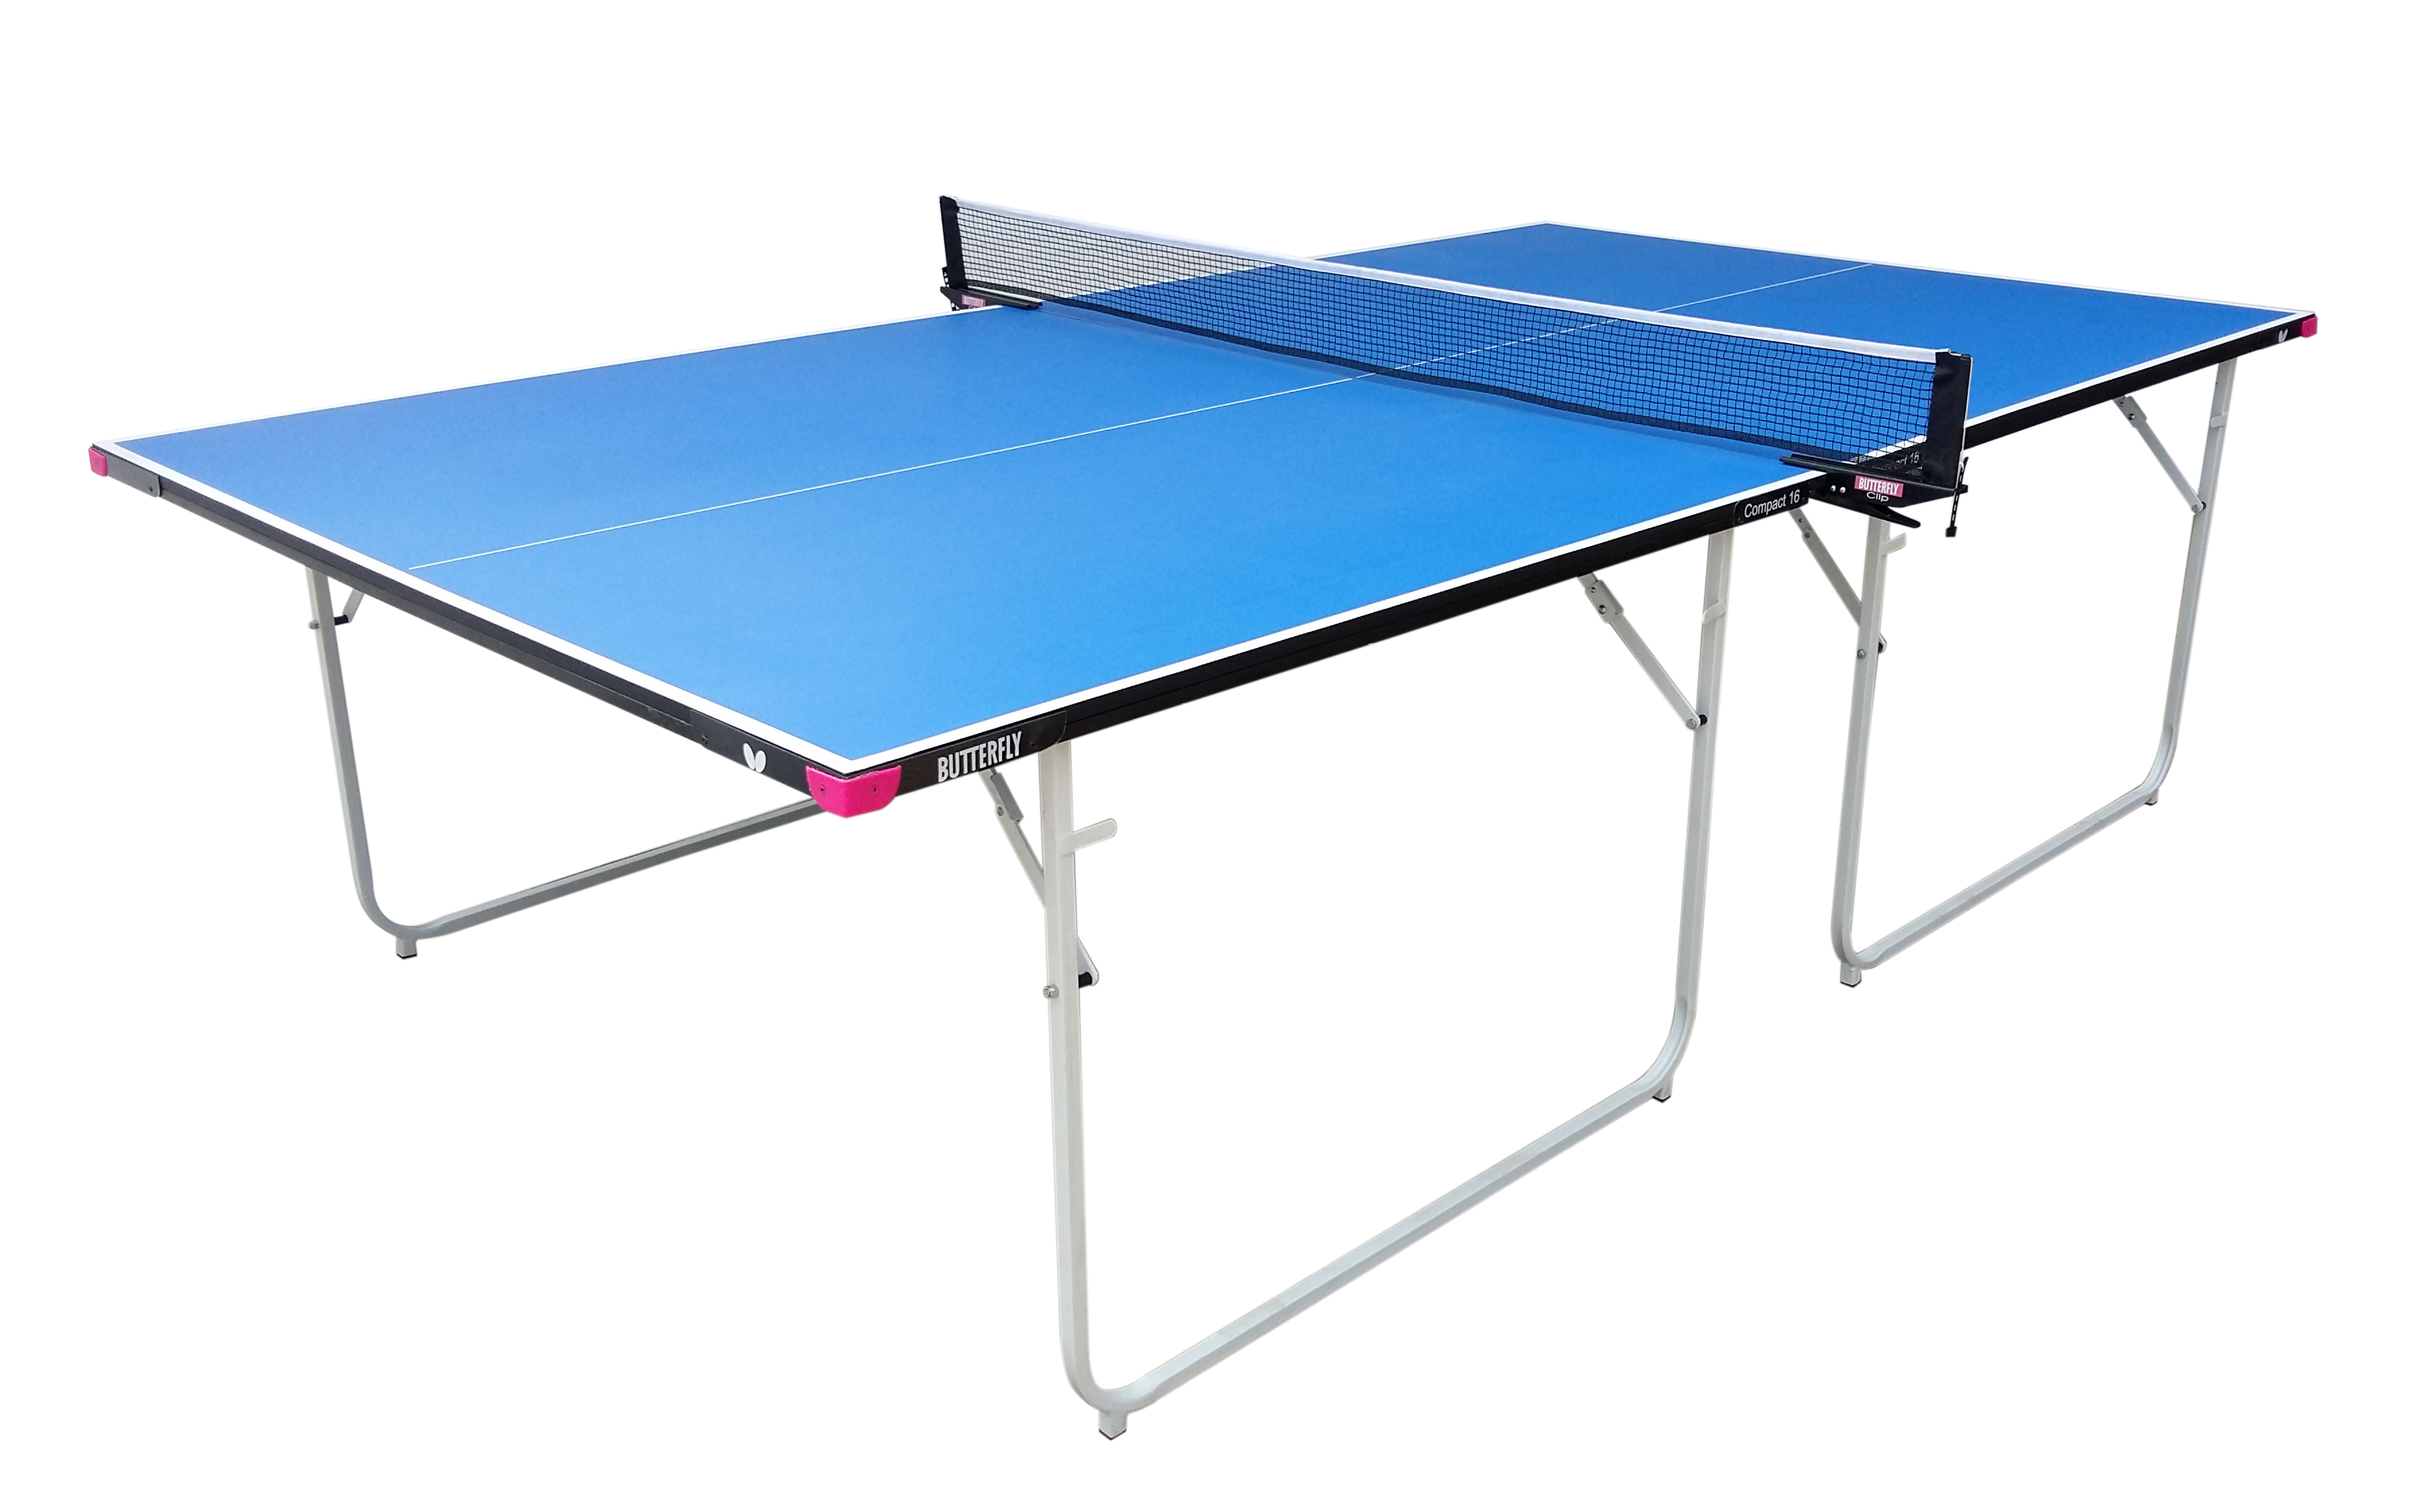 Butterfly compact indoor 16 ok sports and games - Butterfly table tennis official website ...